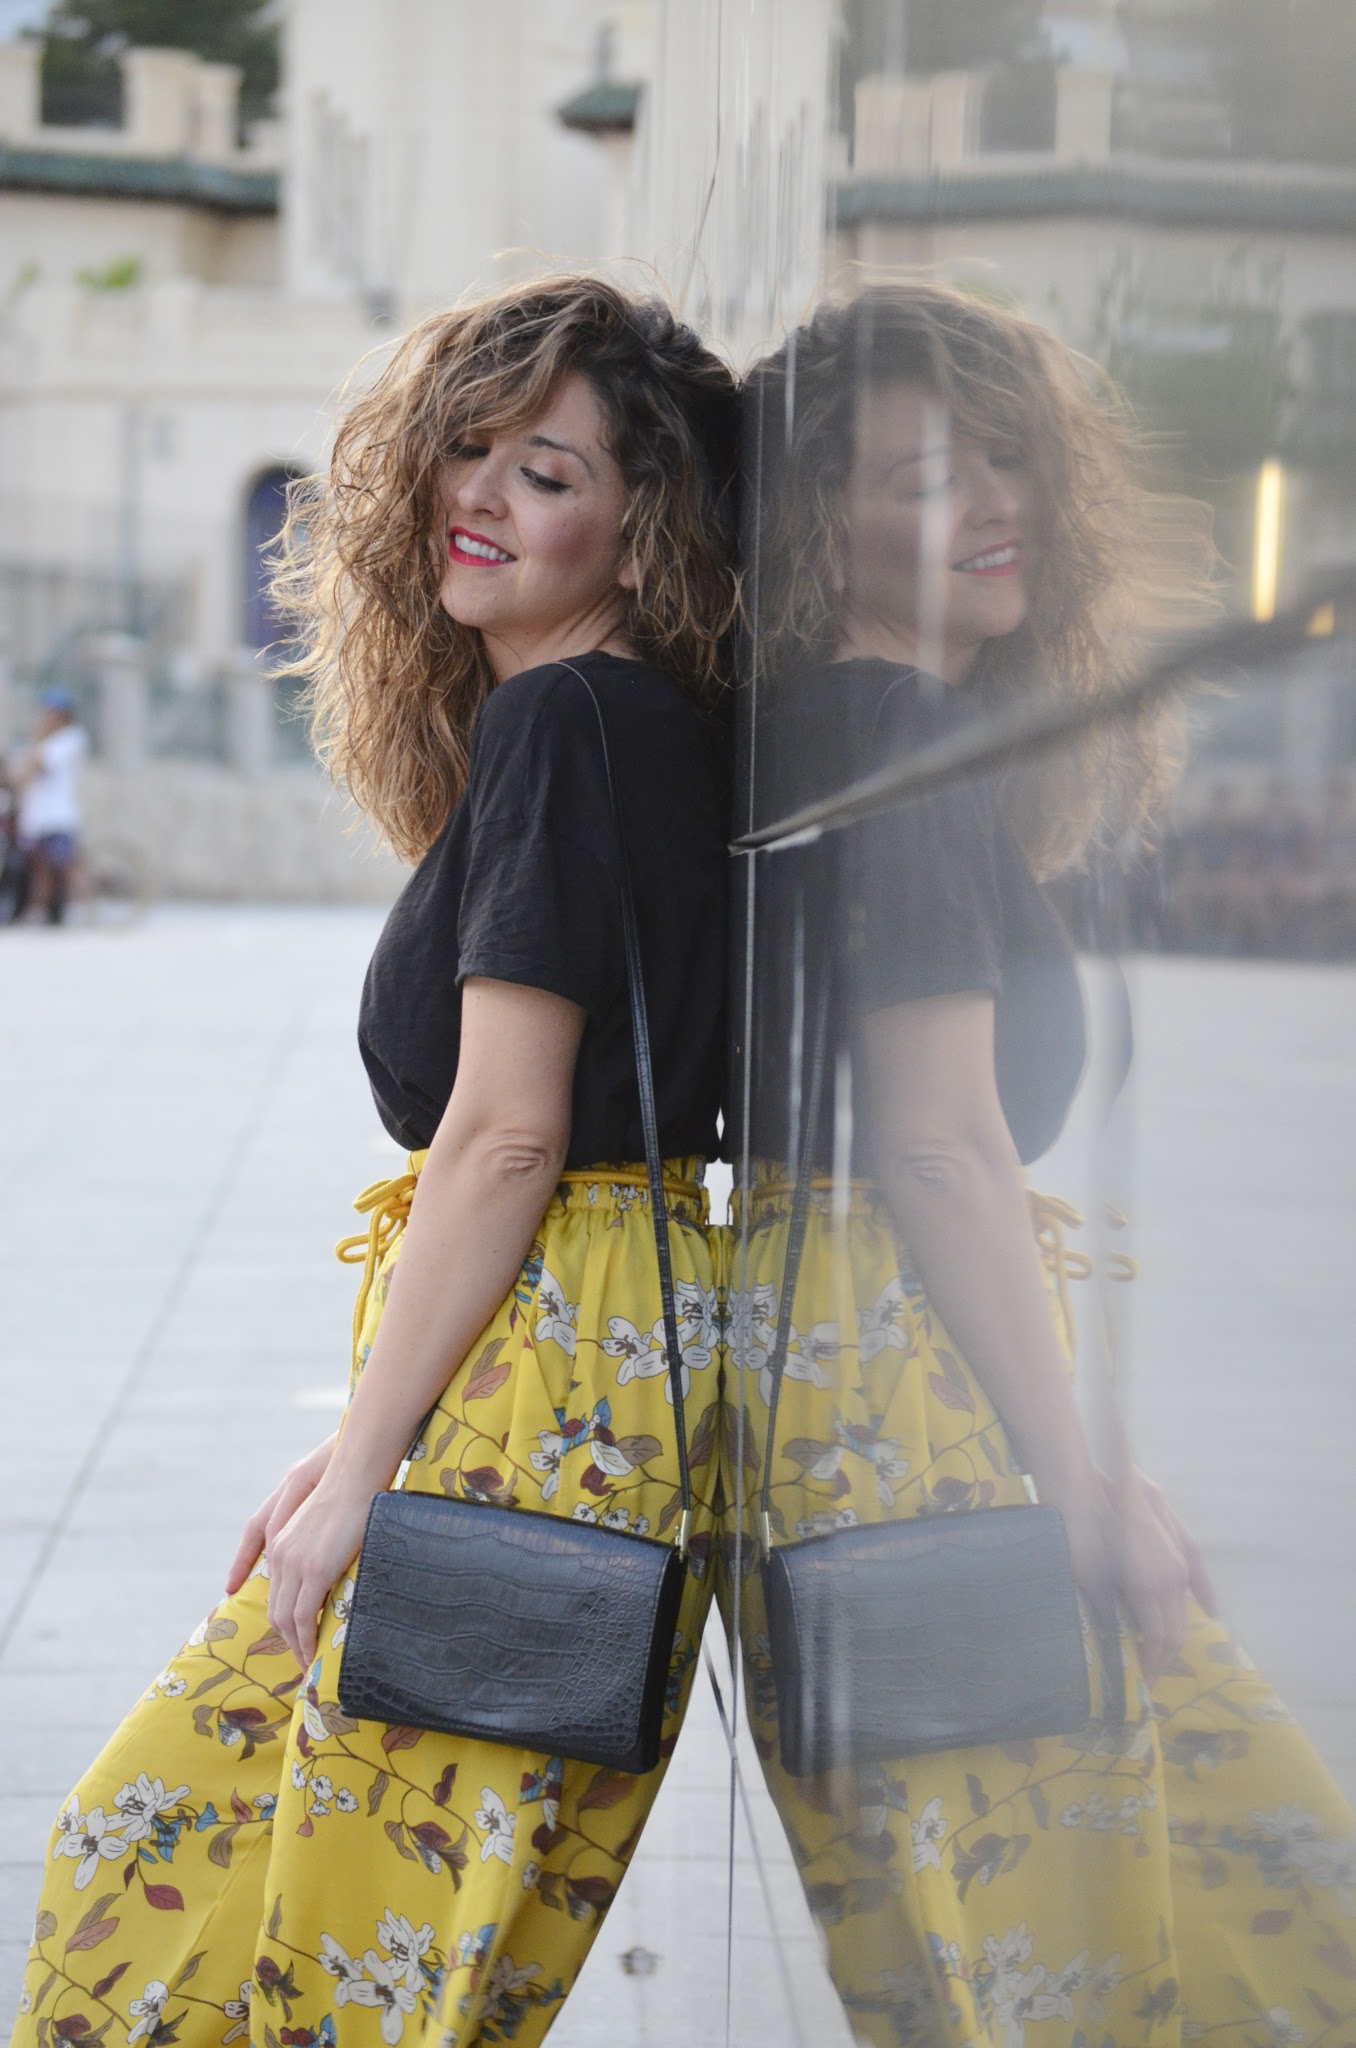 blogger-tarasessence-sfera-total-look